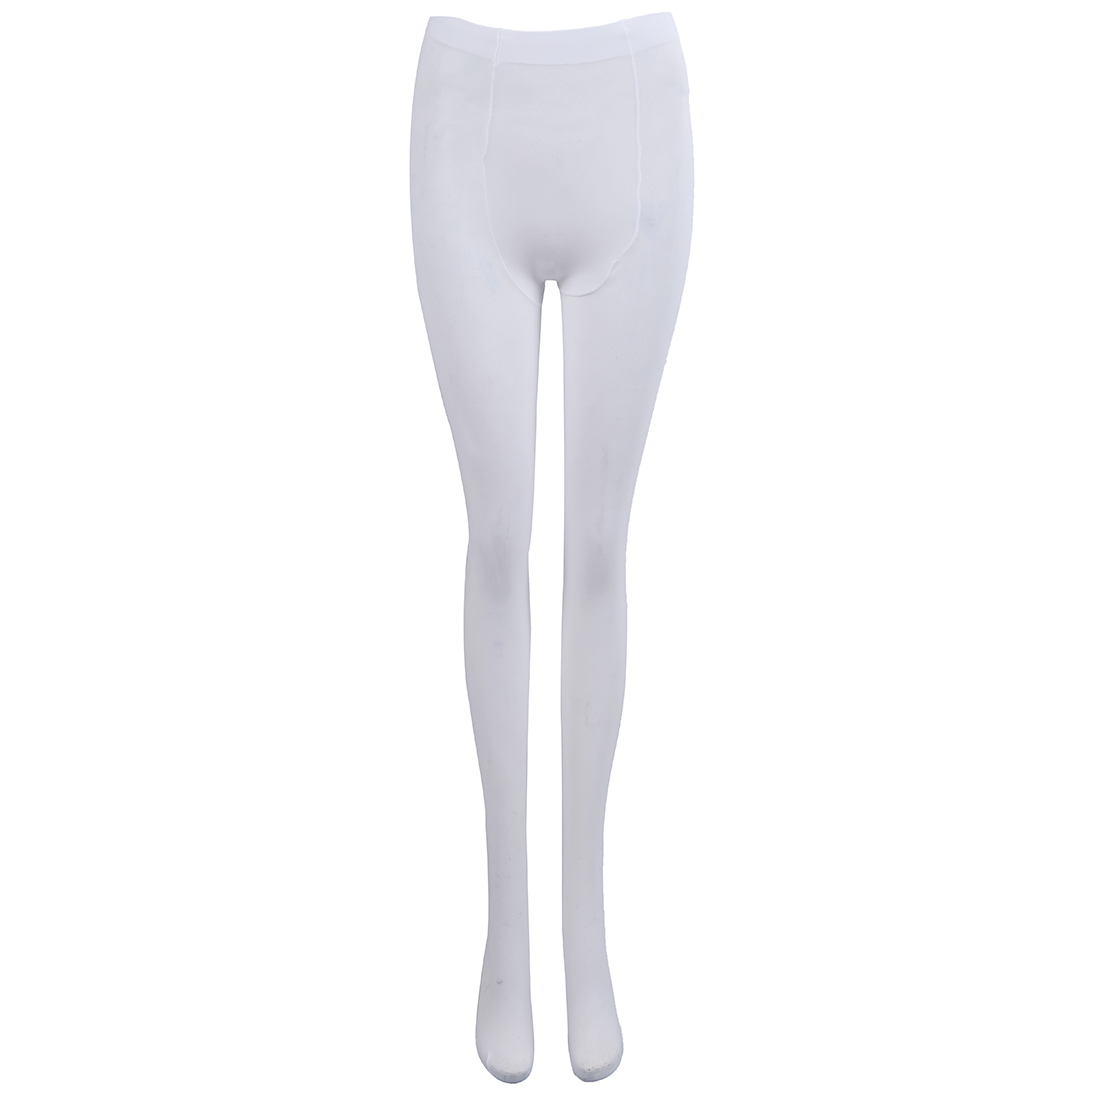 White Tender Solid Color Velvet Pantyhose For Women